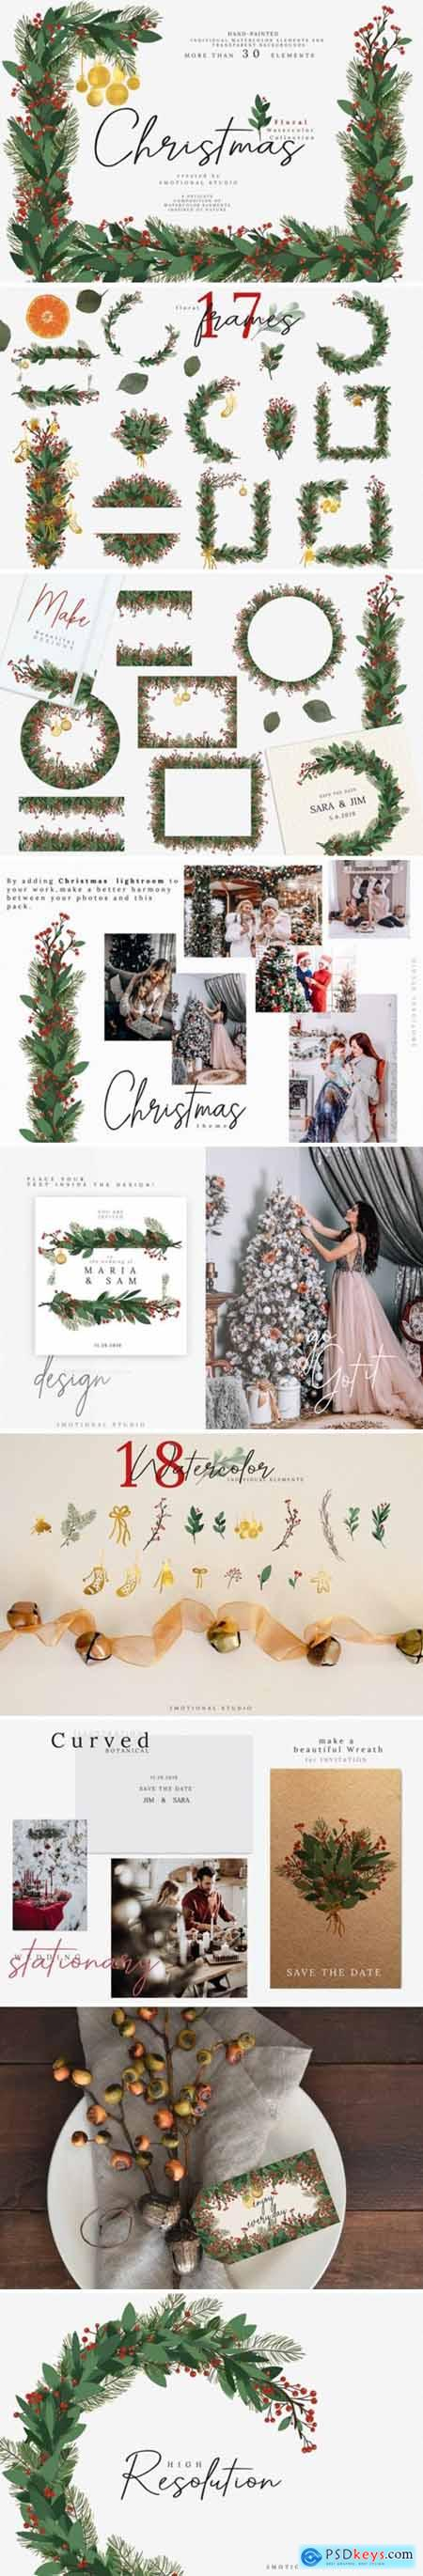 Christmas Watercolor Floral Frames 2194644